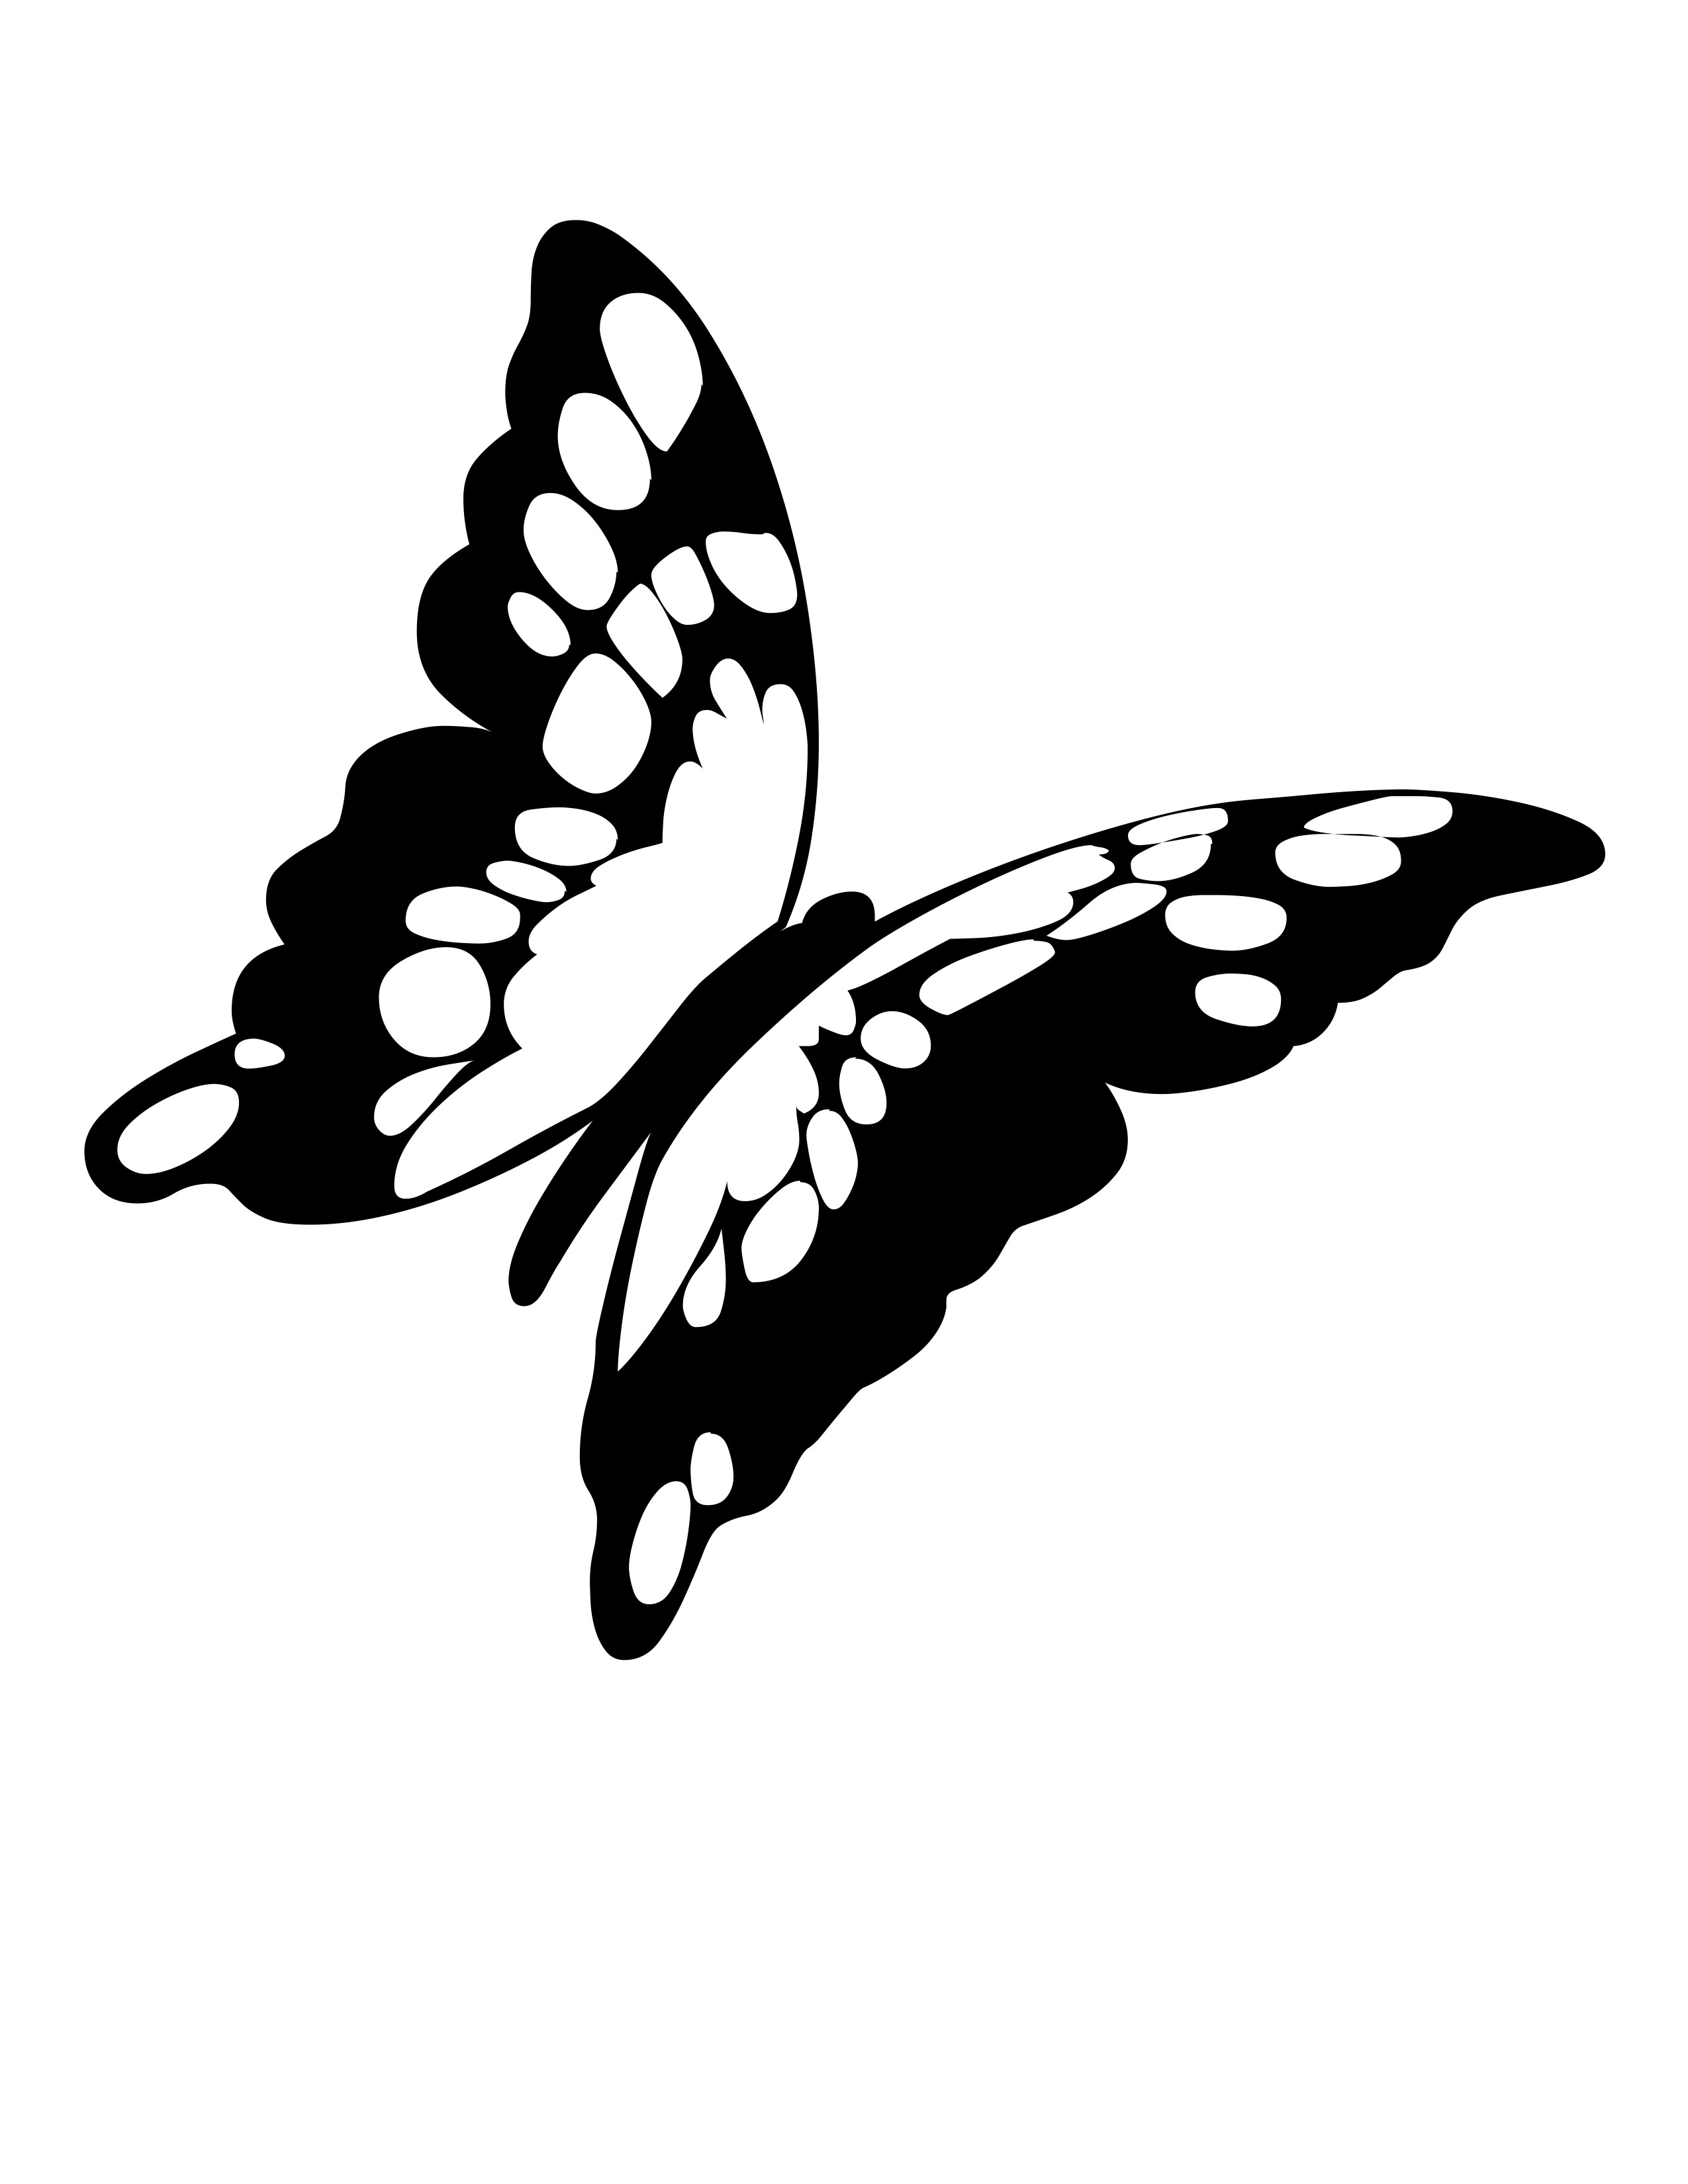 Monarch Butterfly Outline.